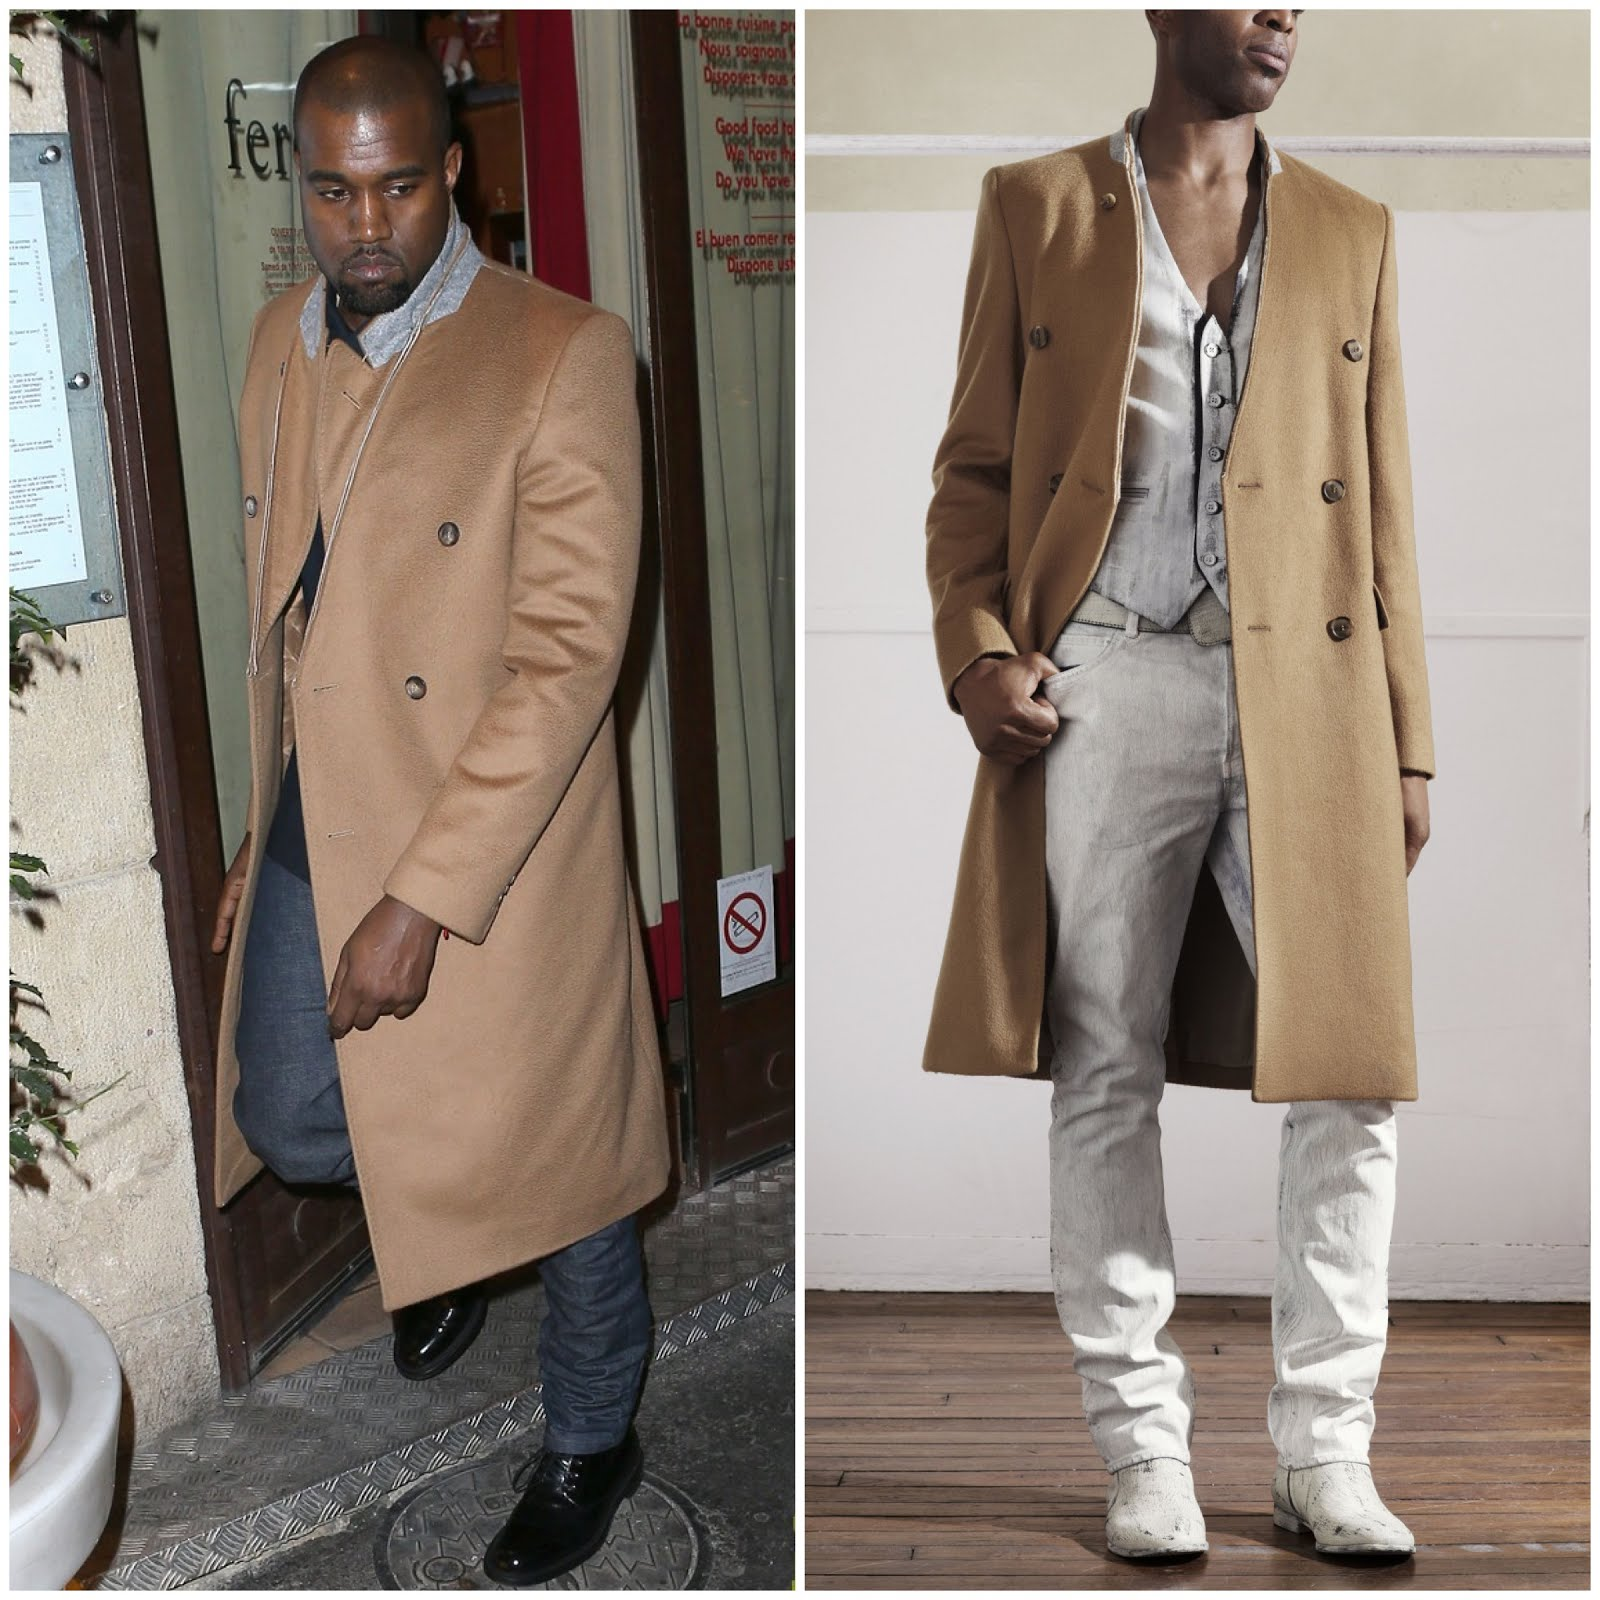 00O00 Menswear Blog Kanye West in Maison Martin Margiela x H&M - Out and about in Paris April 2013